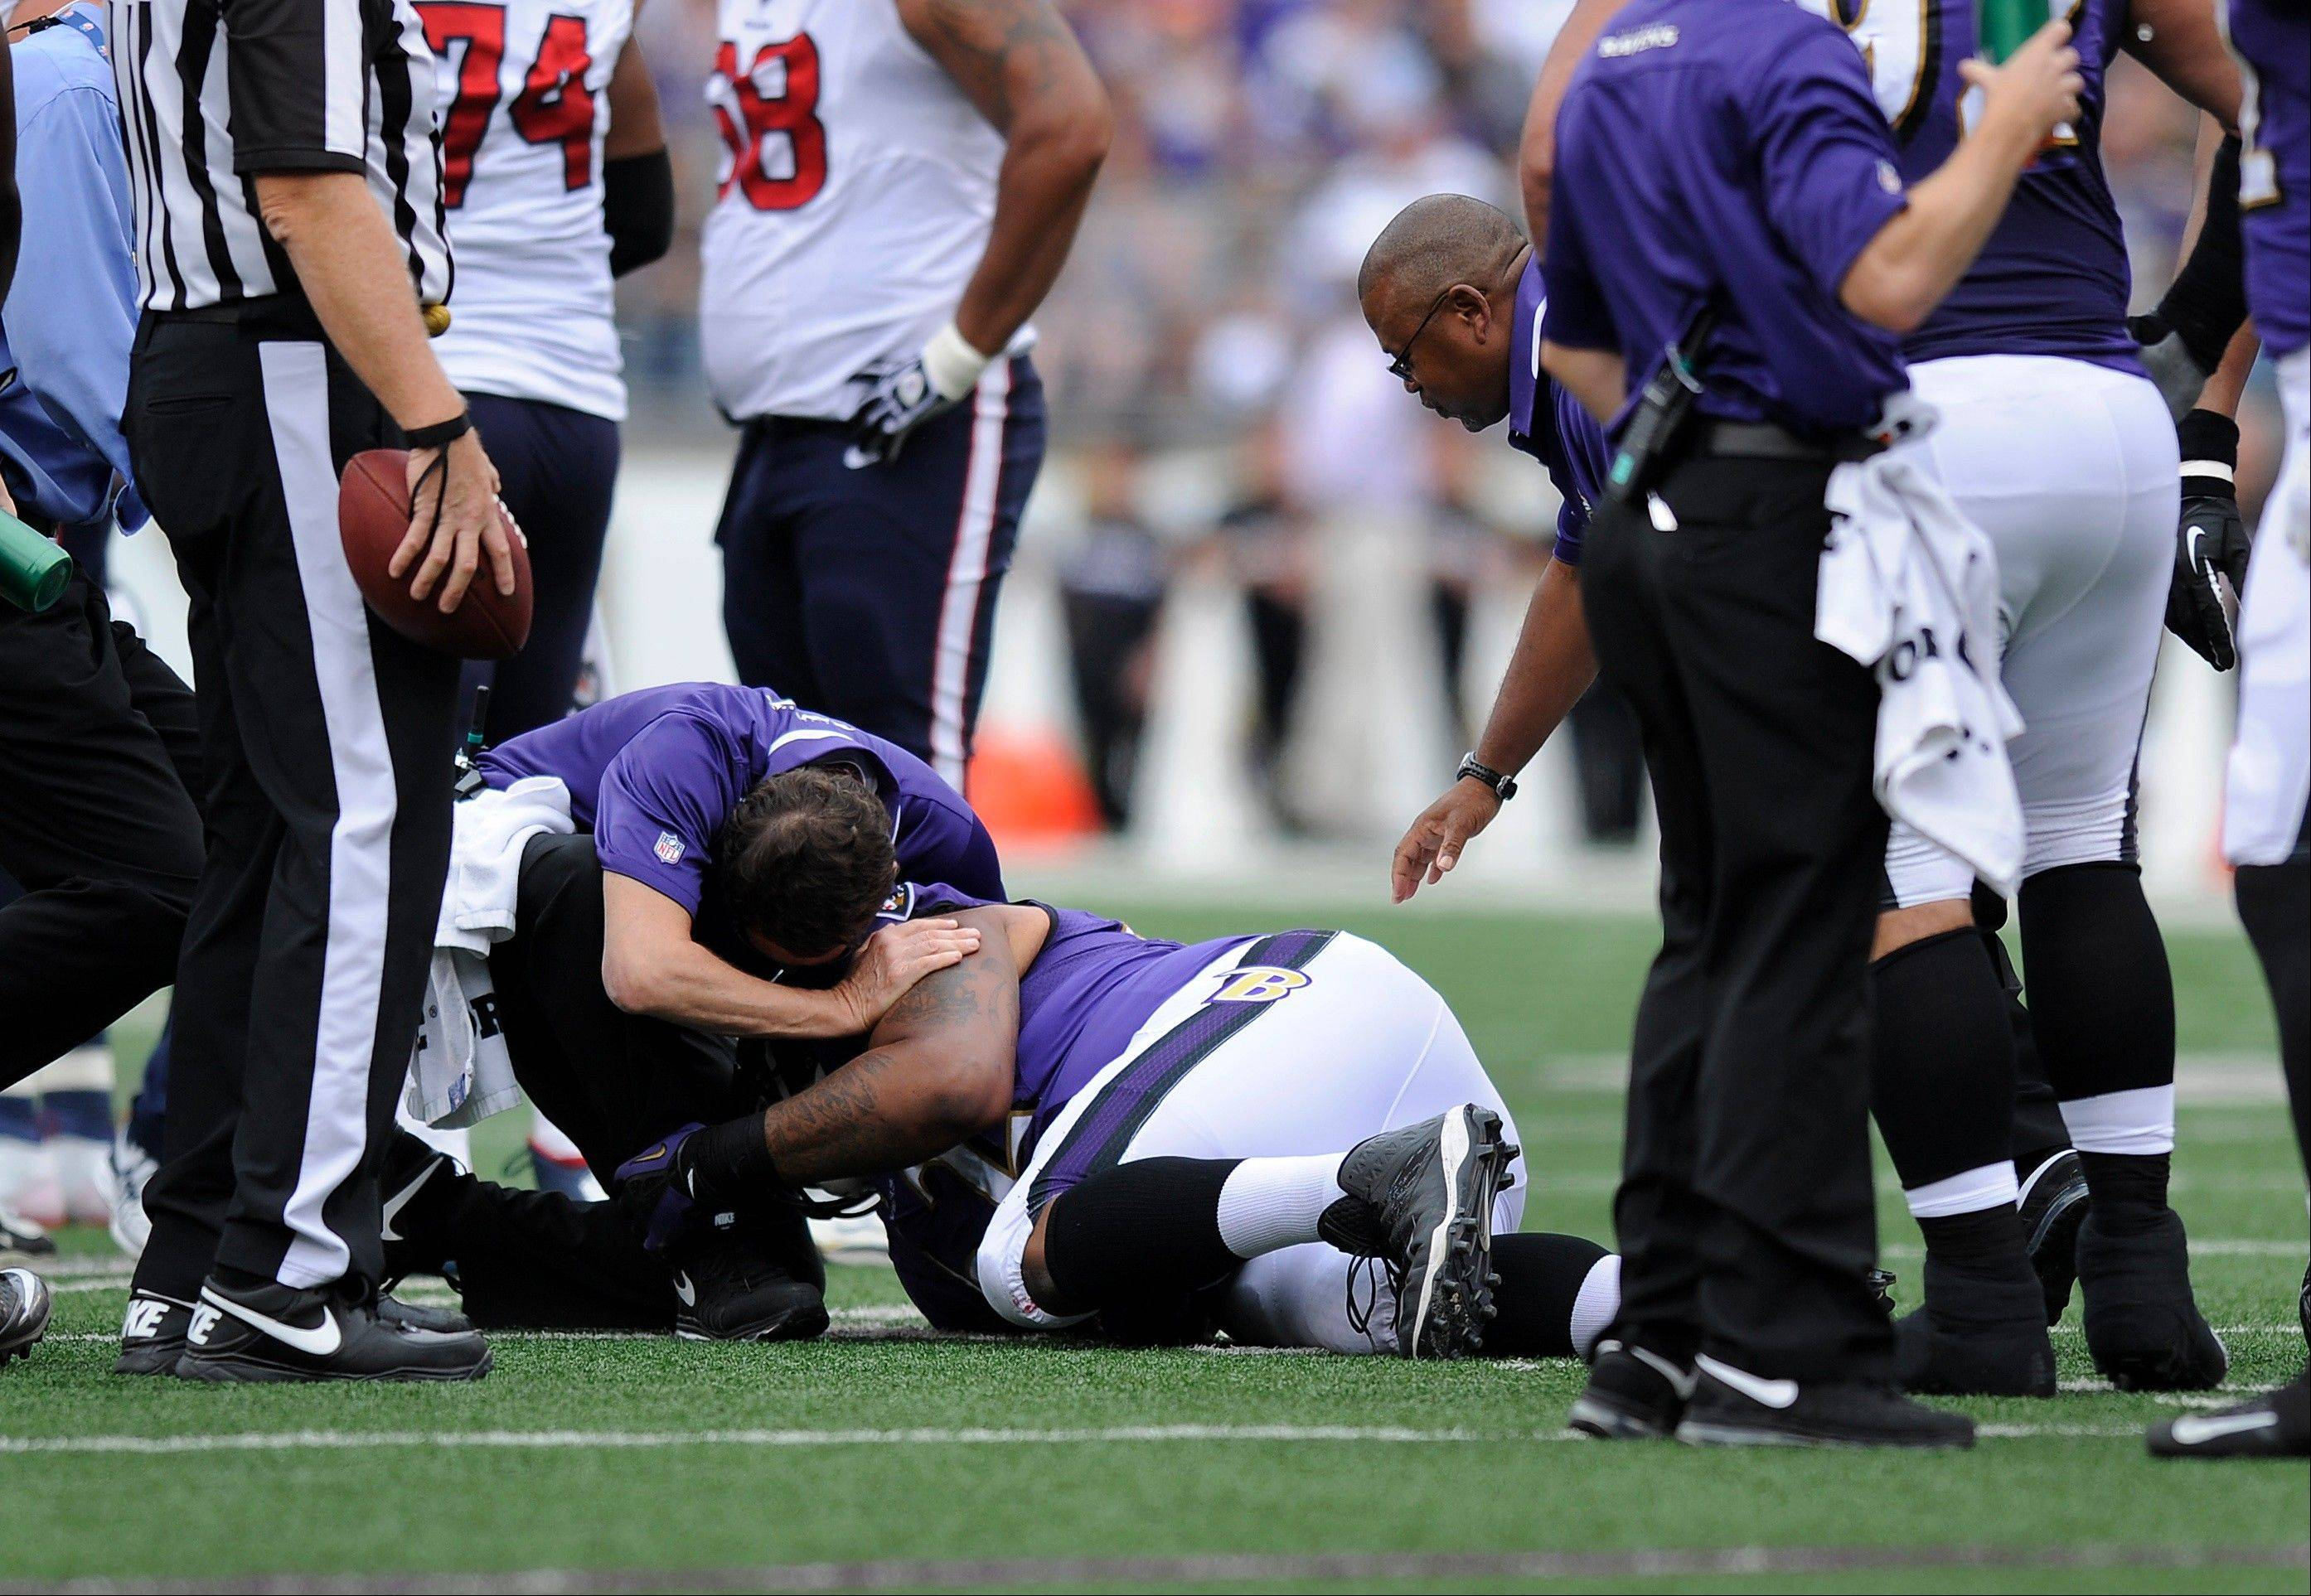 Baltimore Ravens nose tackle Terrence Cody is attended to by Ravens staff after he injured himself on a play in the first half of an NFL football game against the Houston Texans, Sunday, Sept. 22, 2013, in Baltimore.